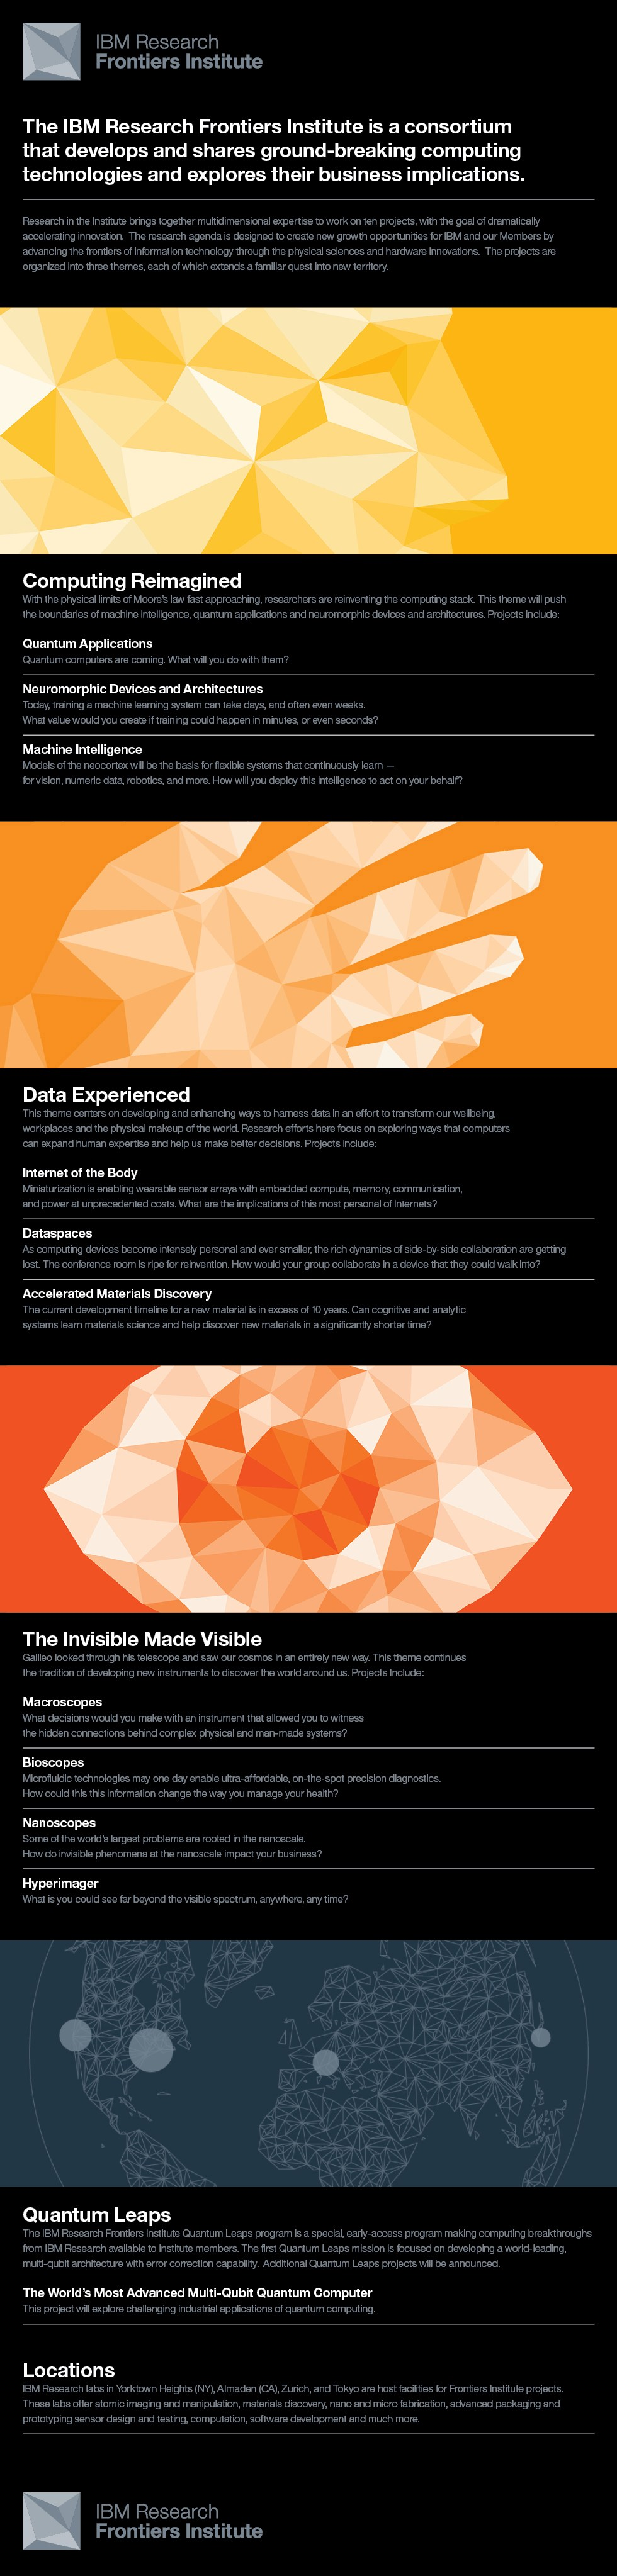 infografik ibm-research-frontiers-institute_26189109504_o